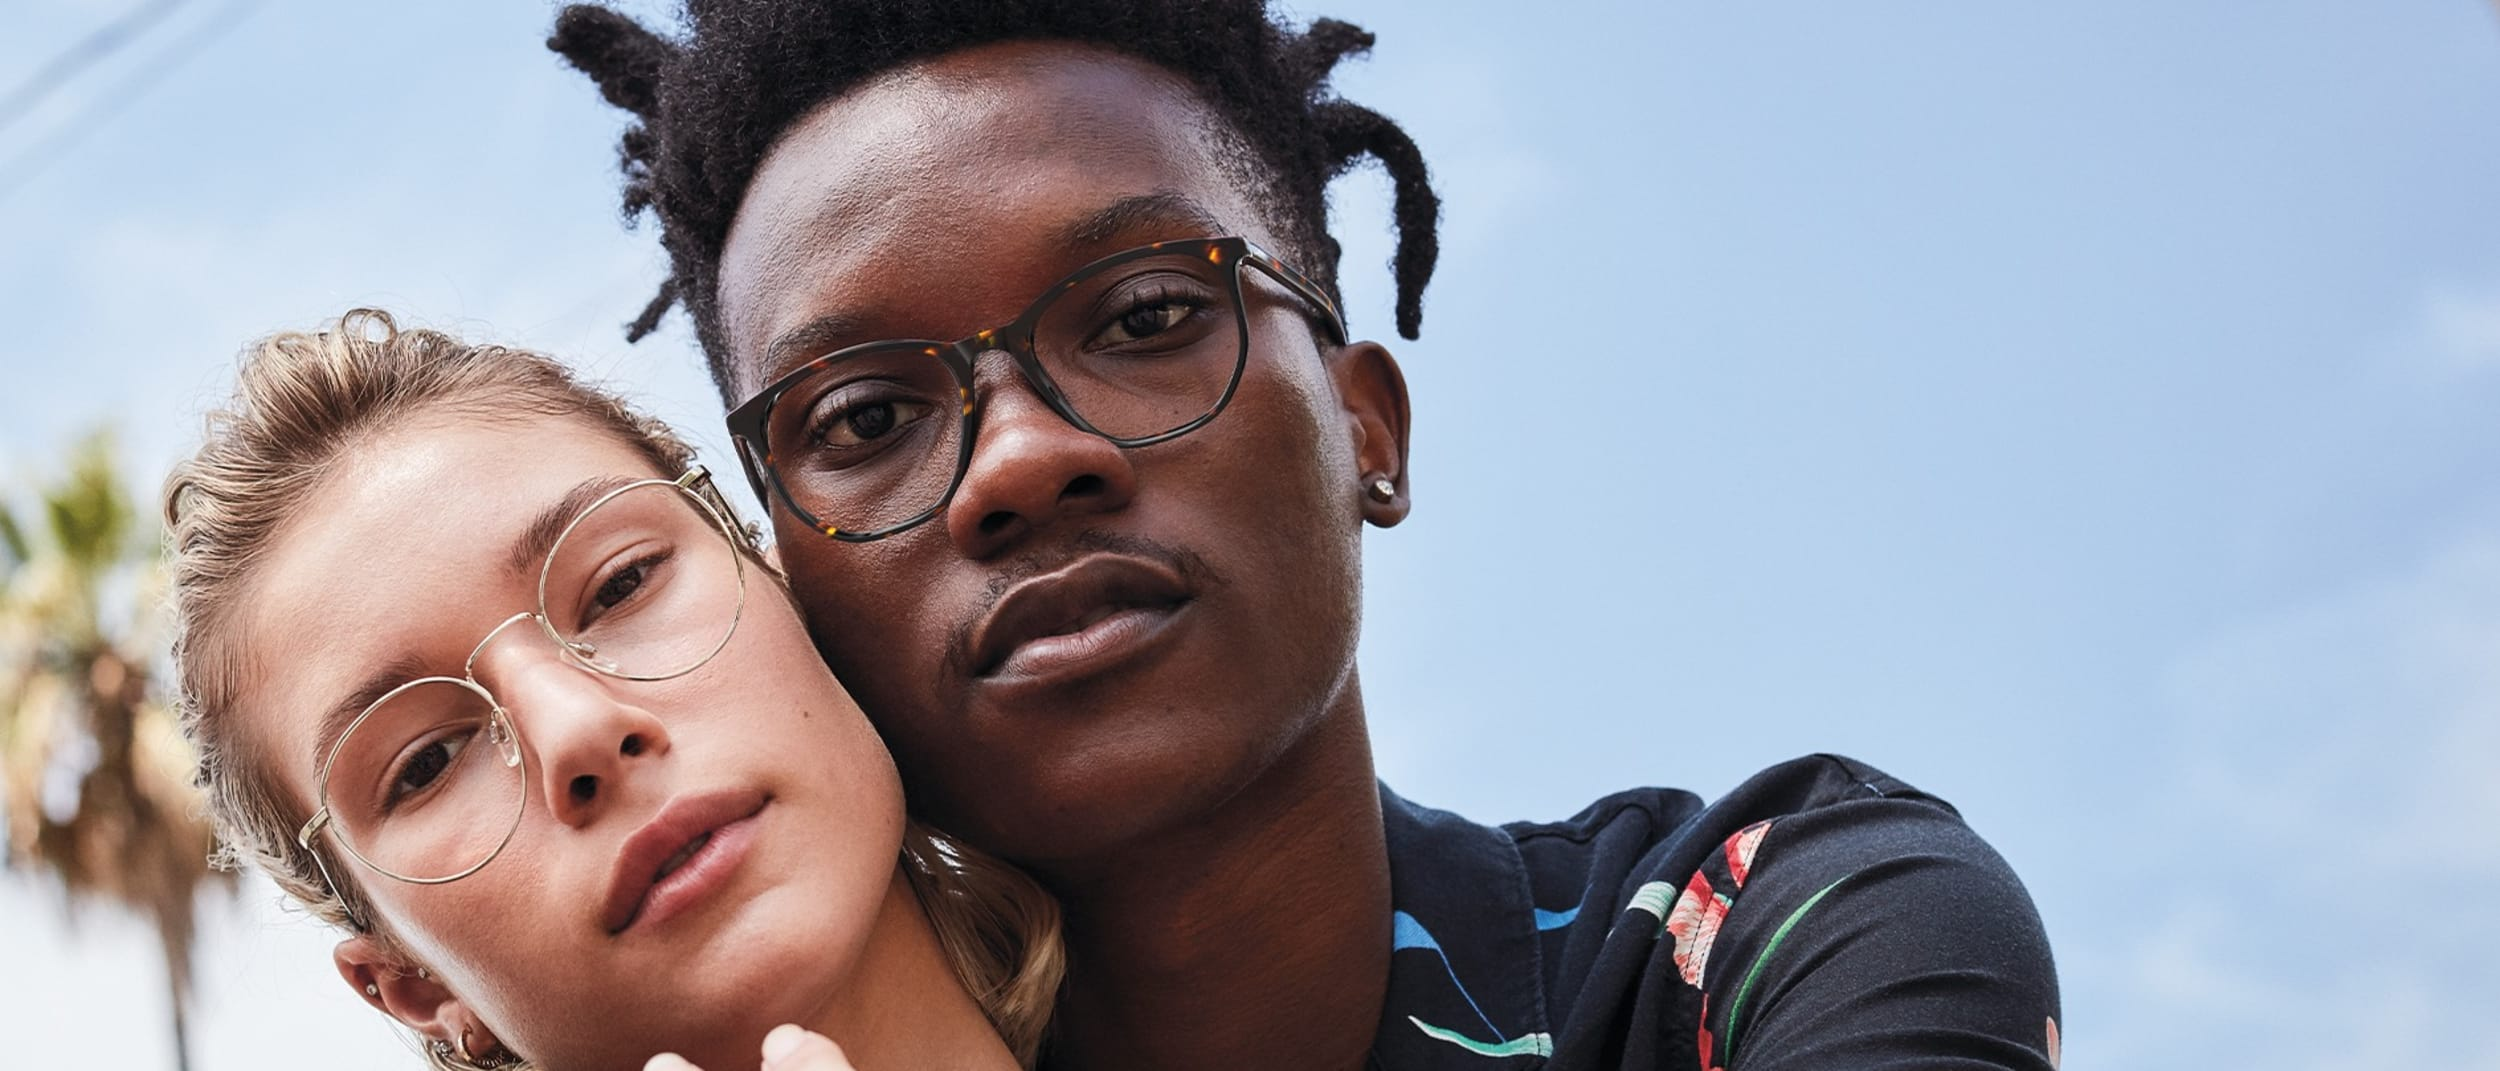 Levi's now in an eyewear collection new to Specsavers